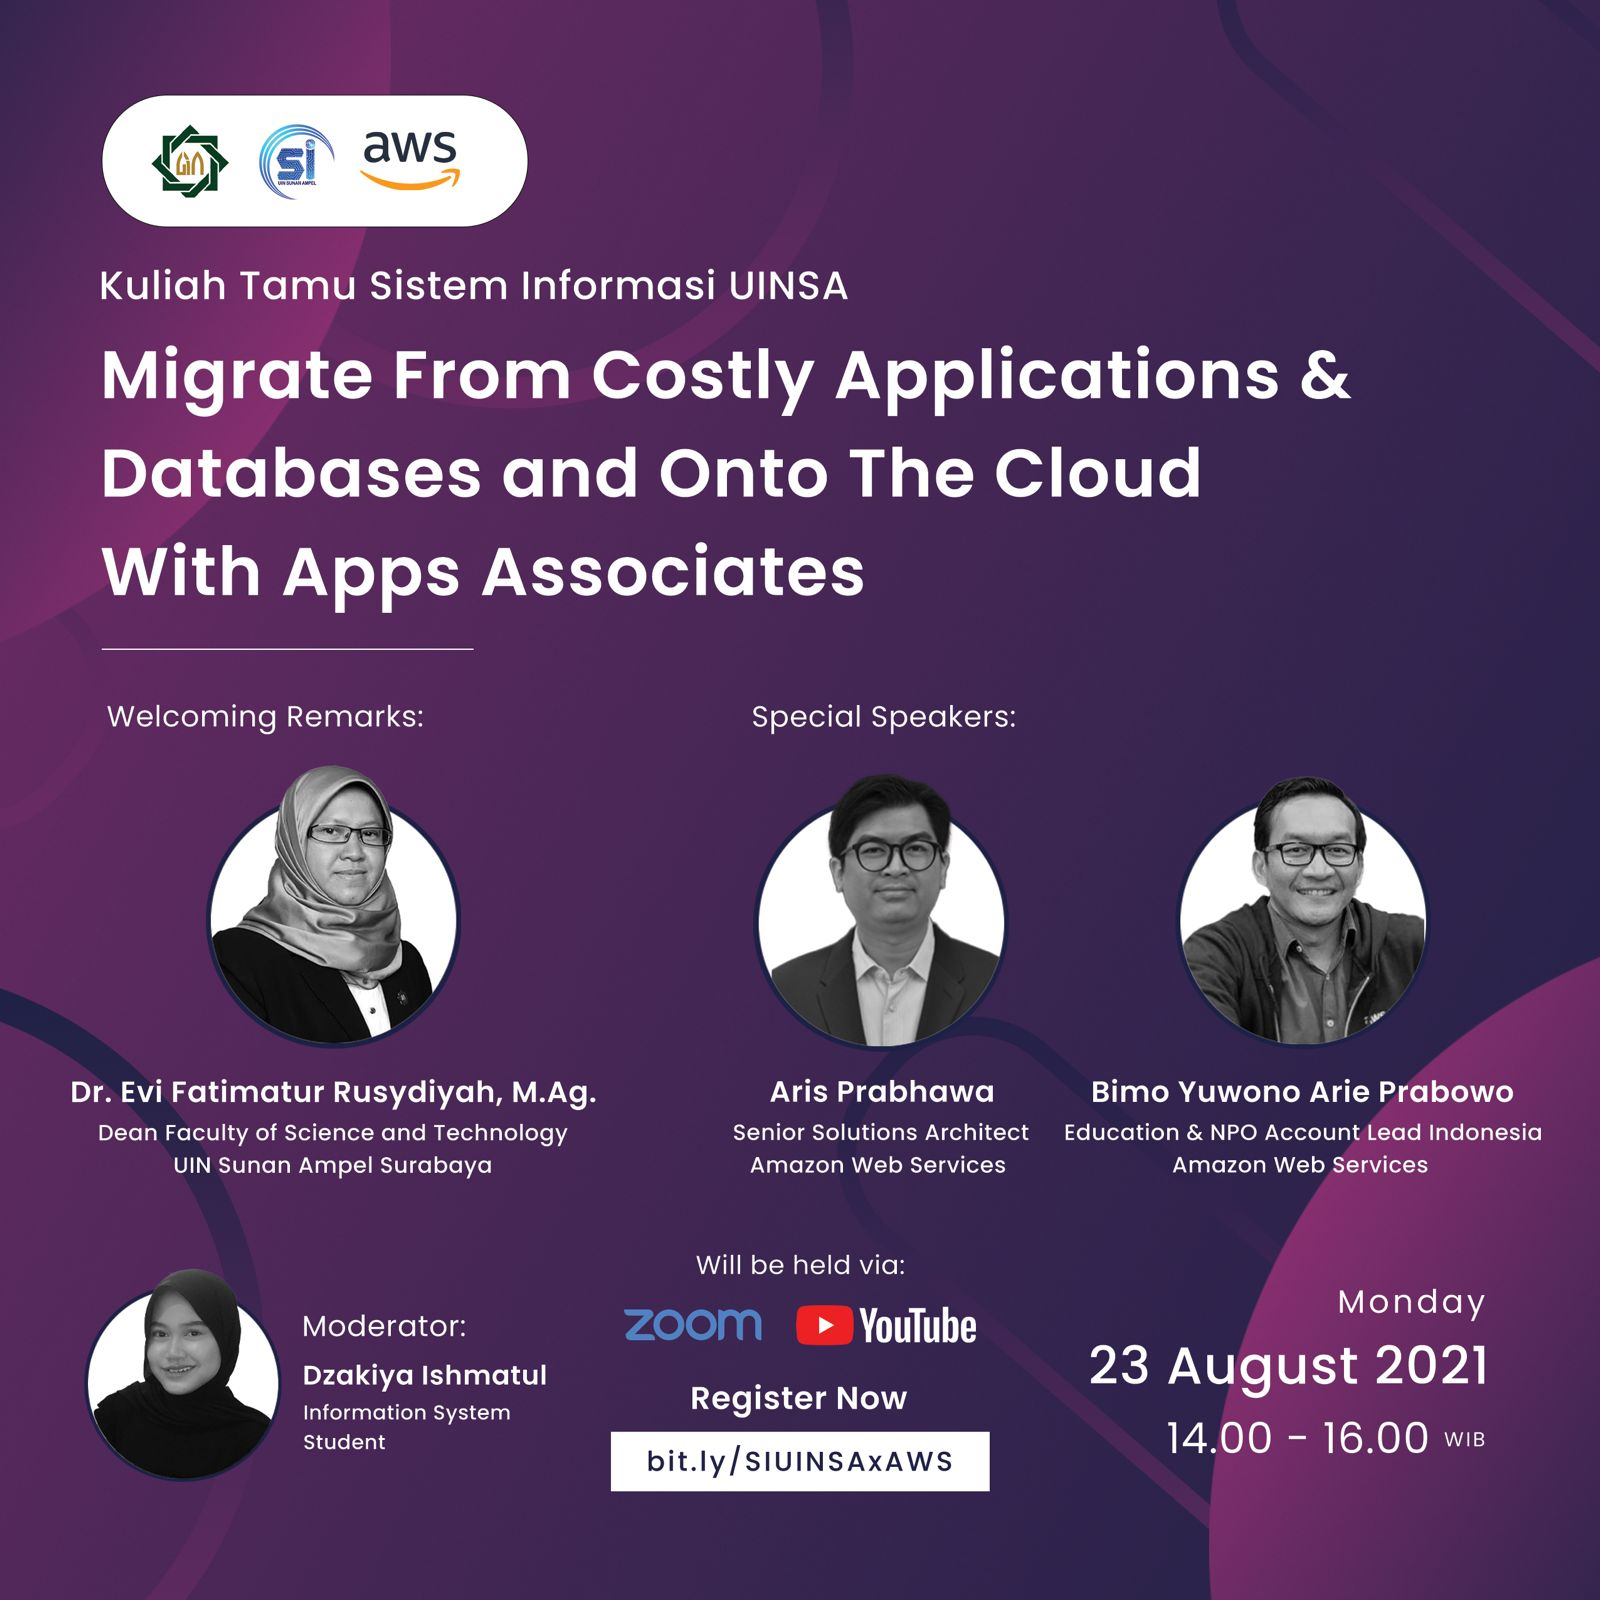 """KULIAH TAMU SISTEM INFORMASI UINSA x Amazon Web Services """"Migrate From Costly Applications & Databases and Onto The Cloud With Apps Associates"""""""